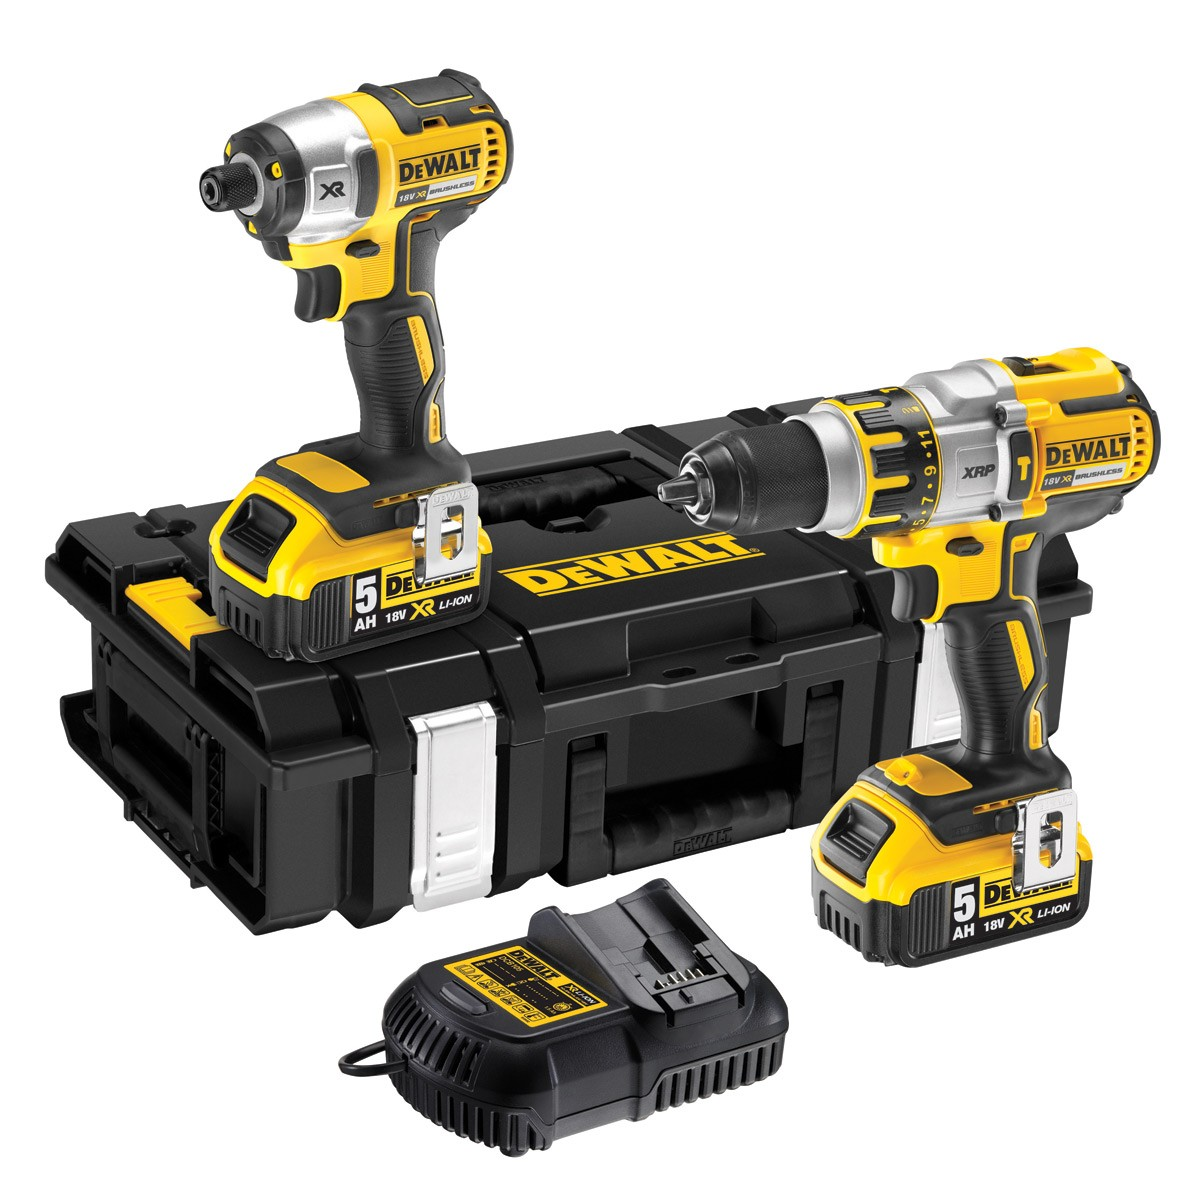 DeWalt DCK255P2 Brushless 18v Combi Drill & Impact Driver inc 2x 5Ah Batts